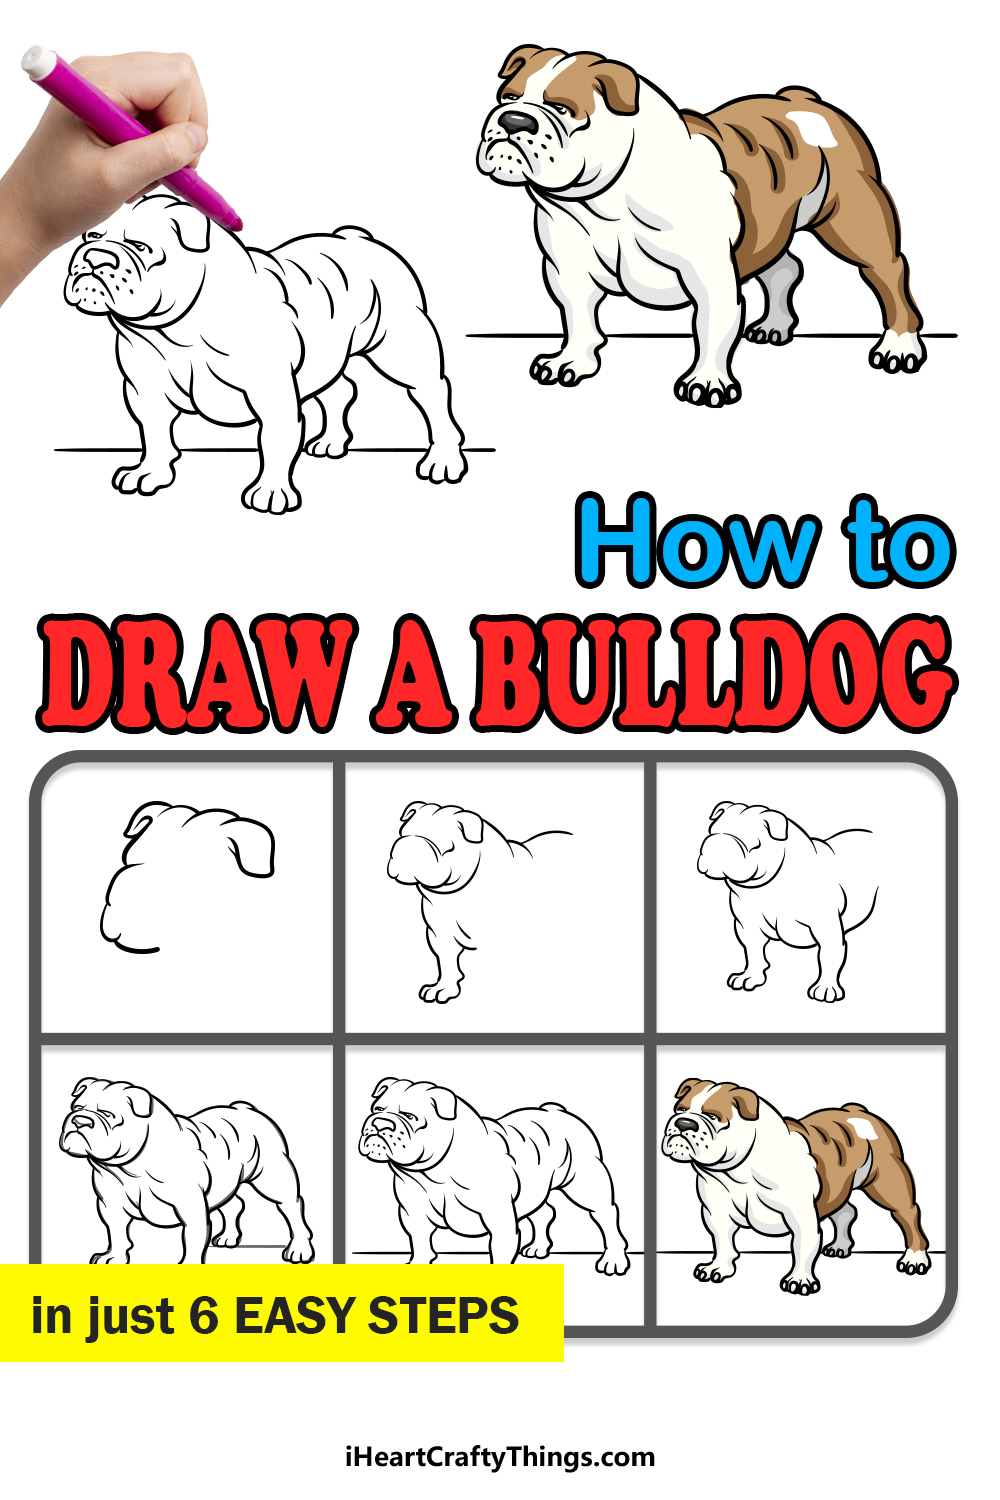 how to draw a bulldog in 6 easy steps